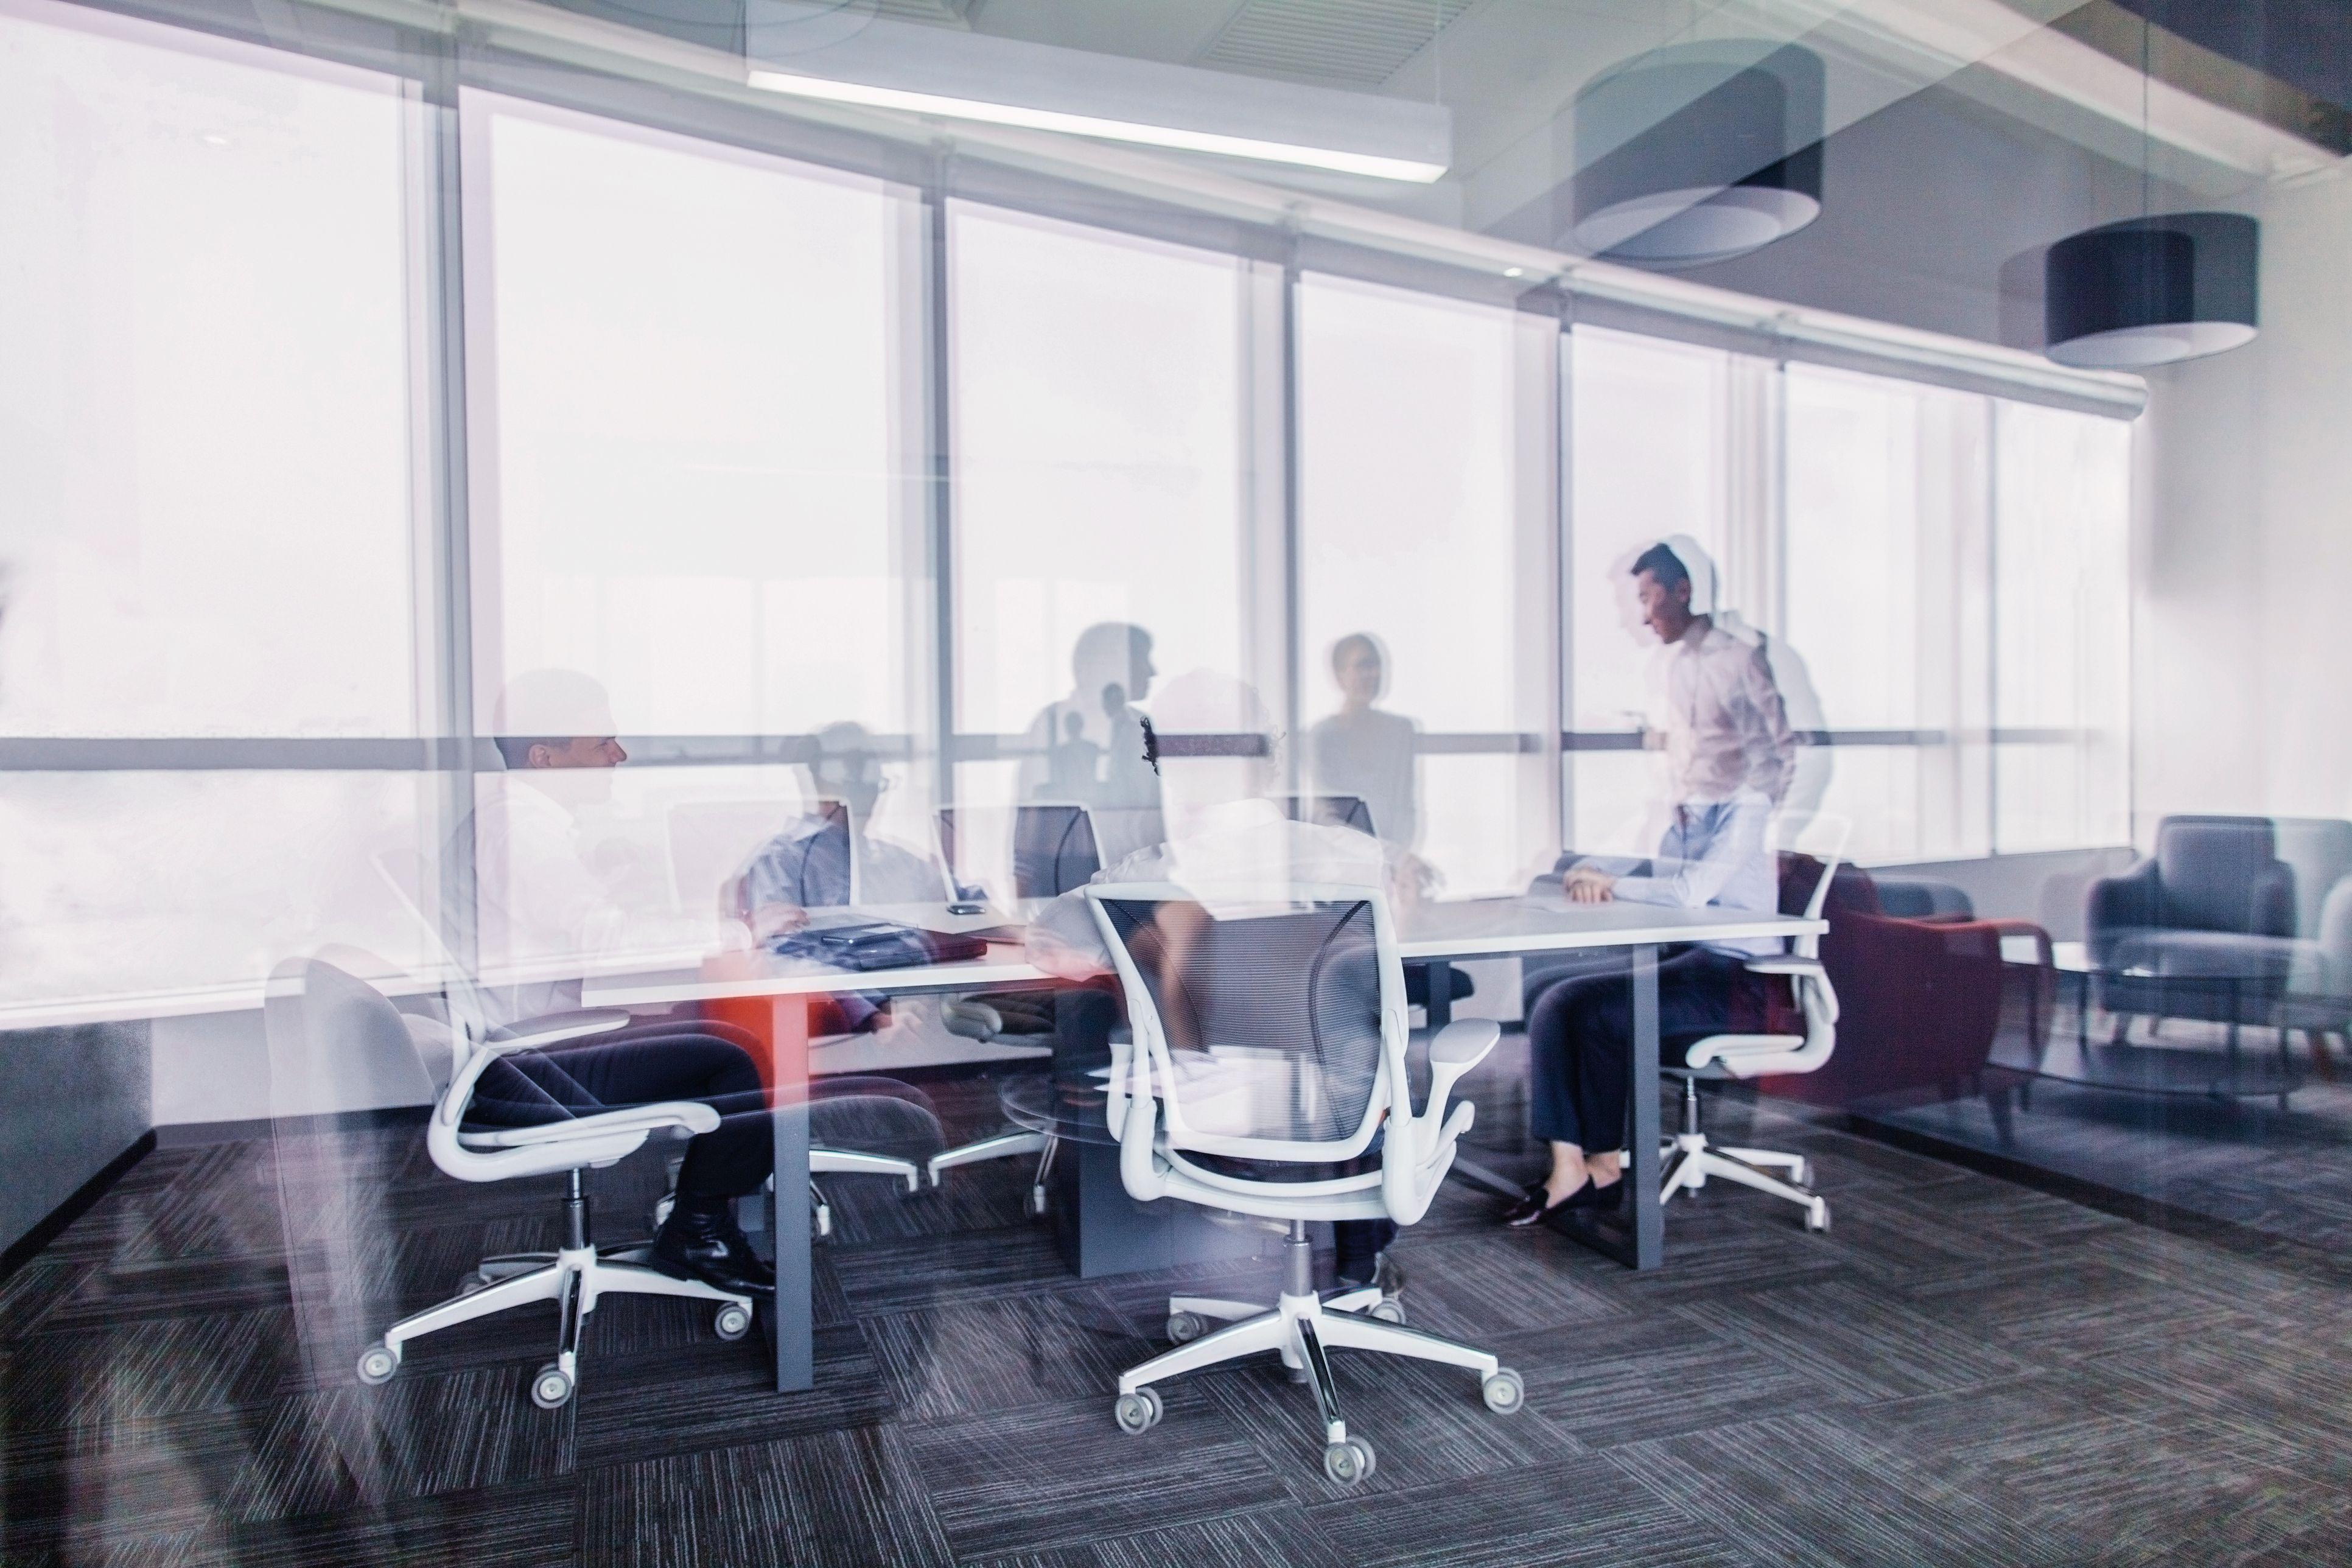 An office set-up with desks and office chairs, with a large glass window in the background